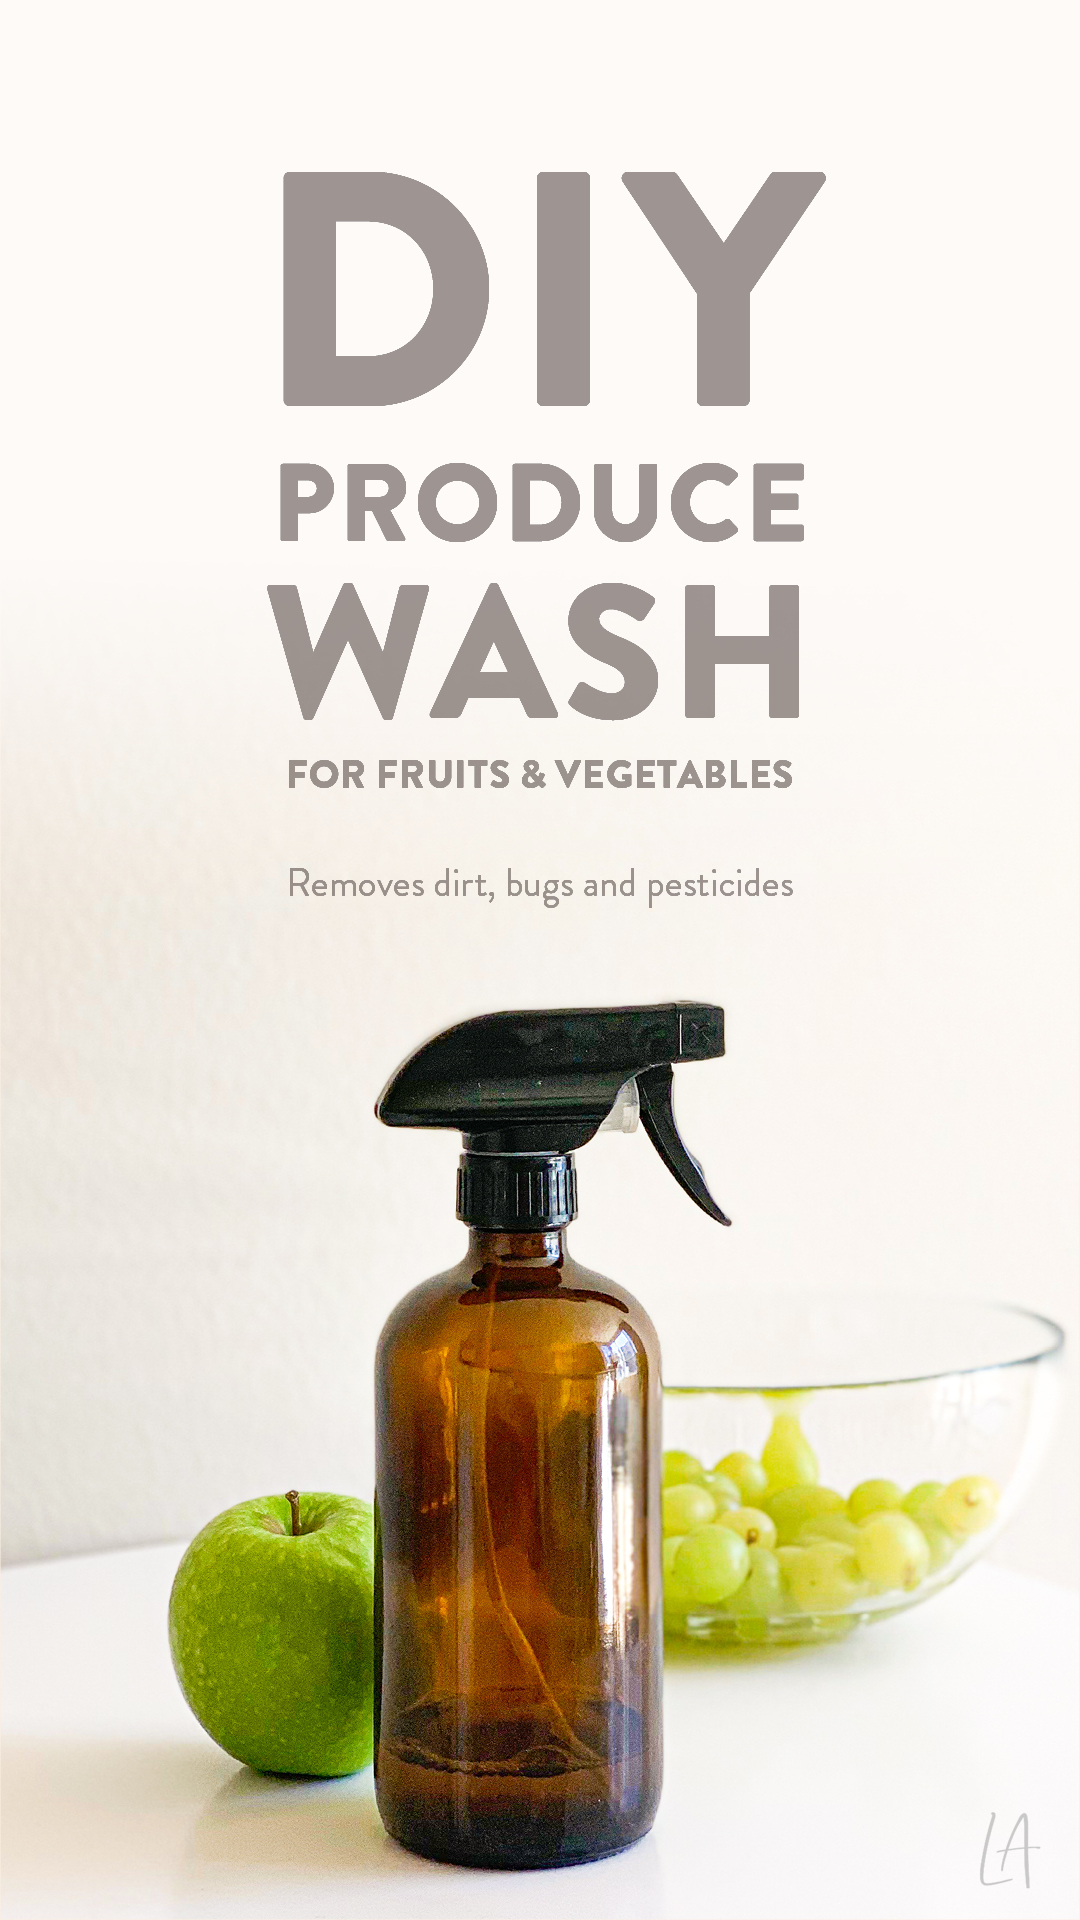 DIY Produce Wash for Fruits & Vegetables